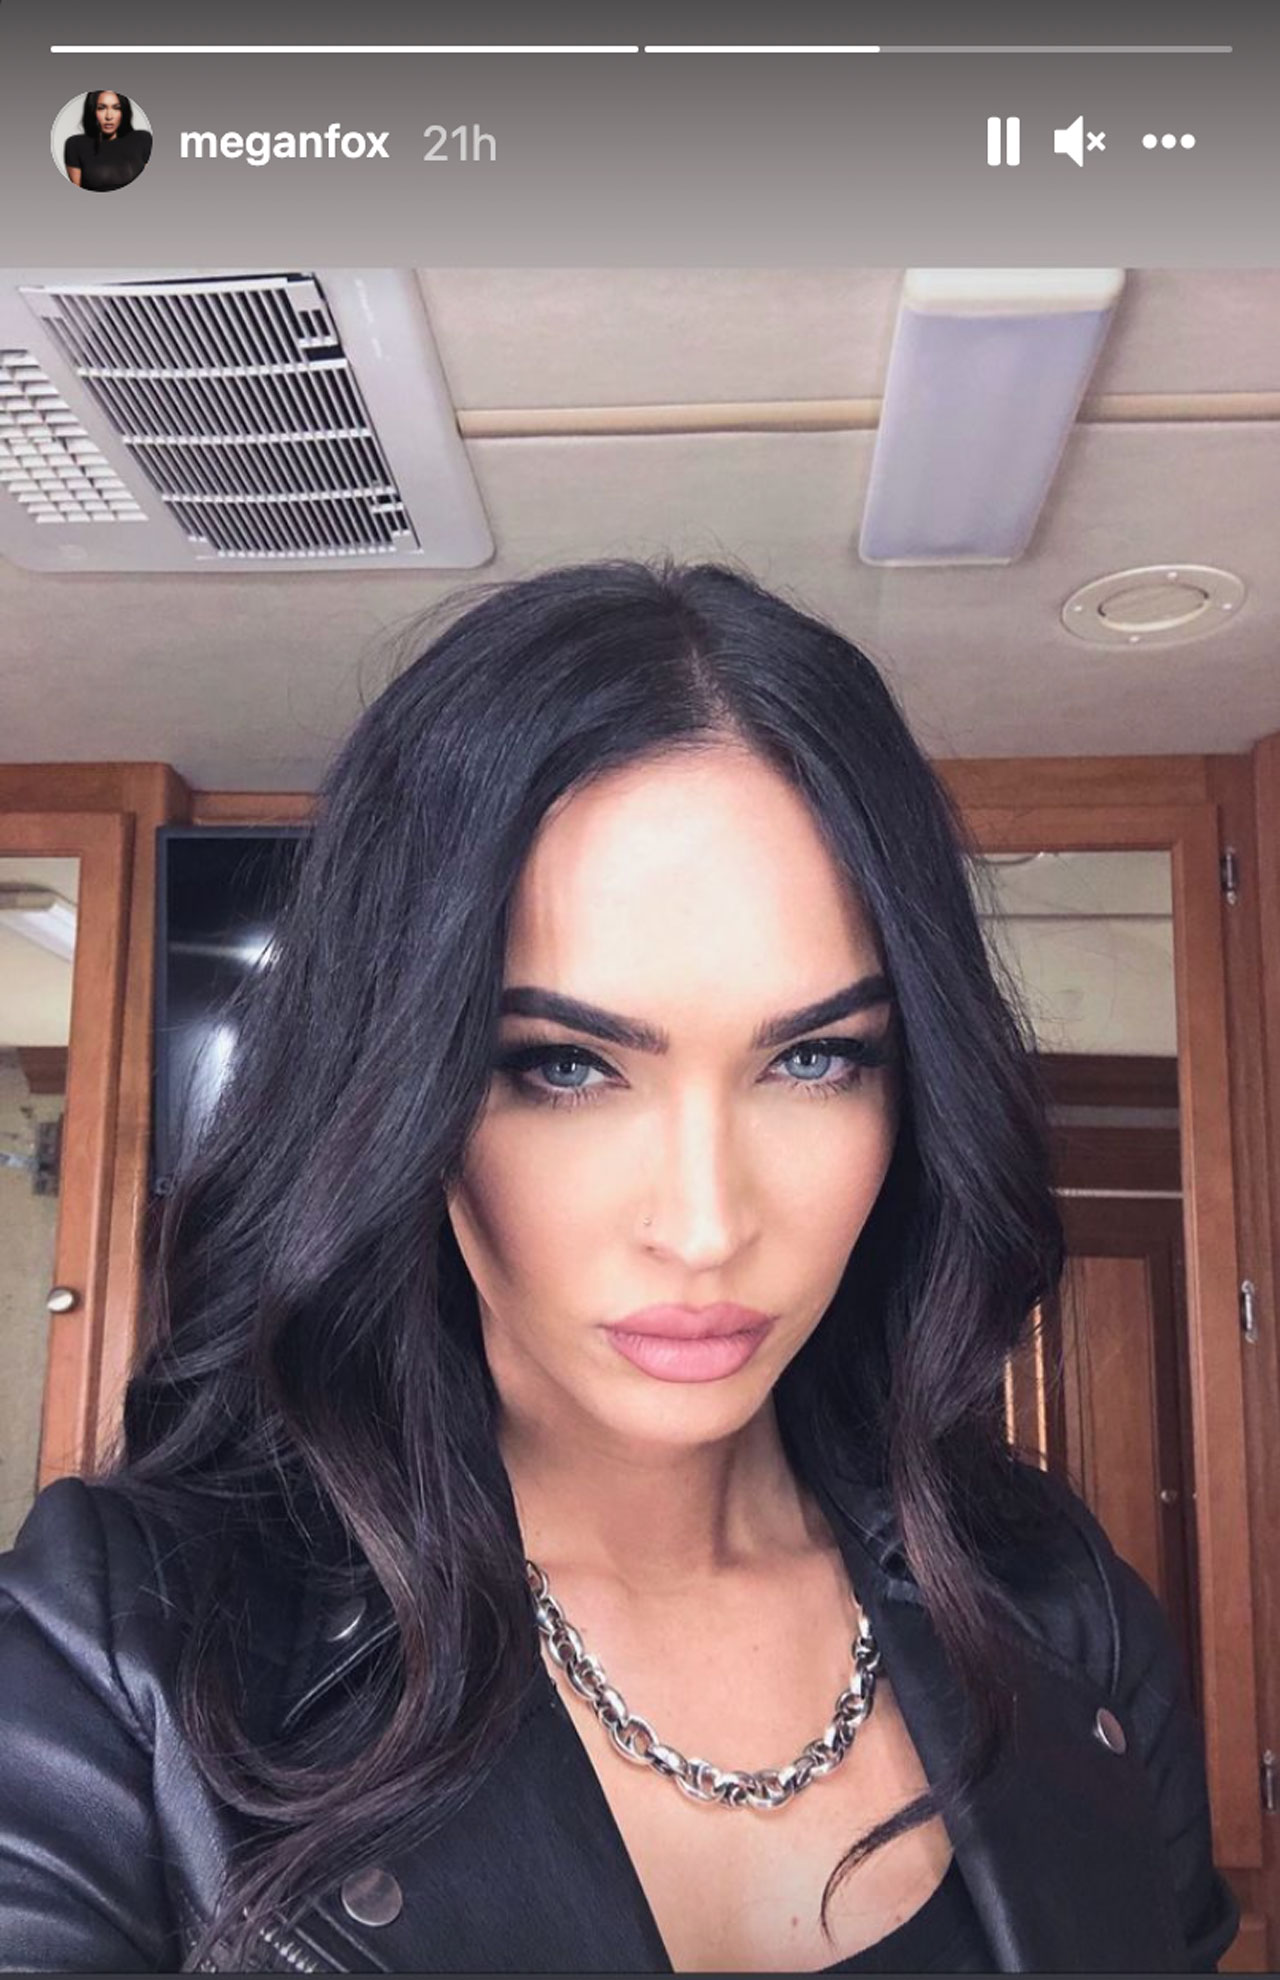 Megan Fox in Expendables 4 costume